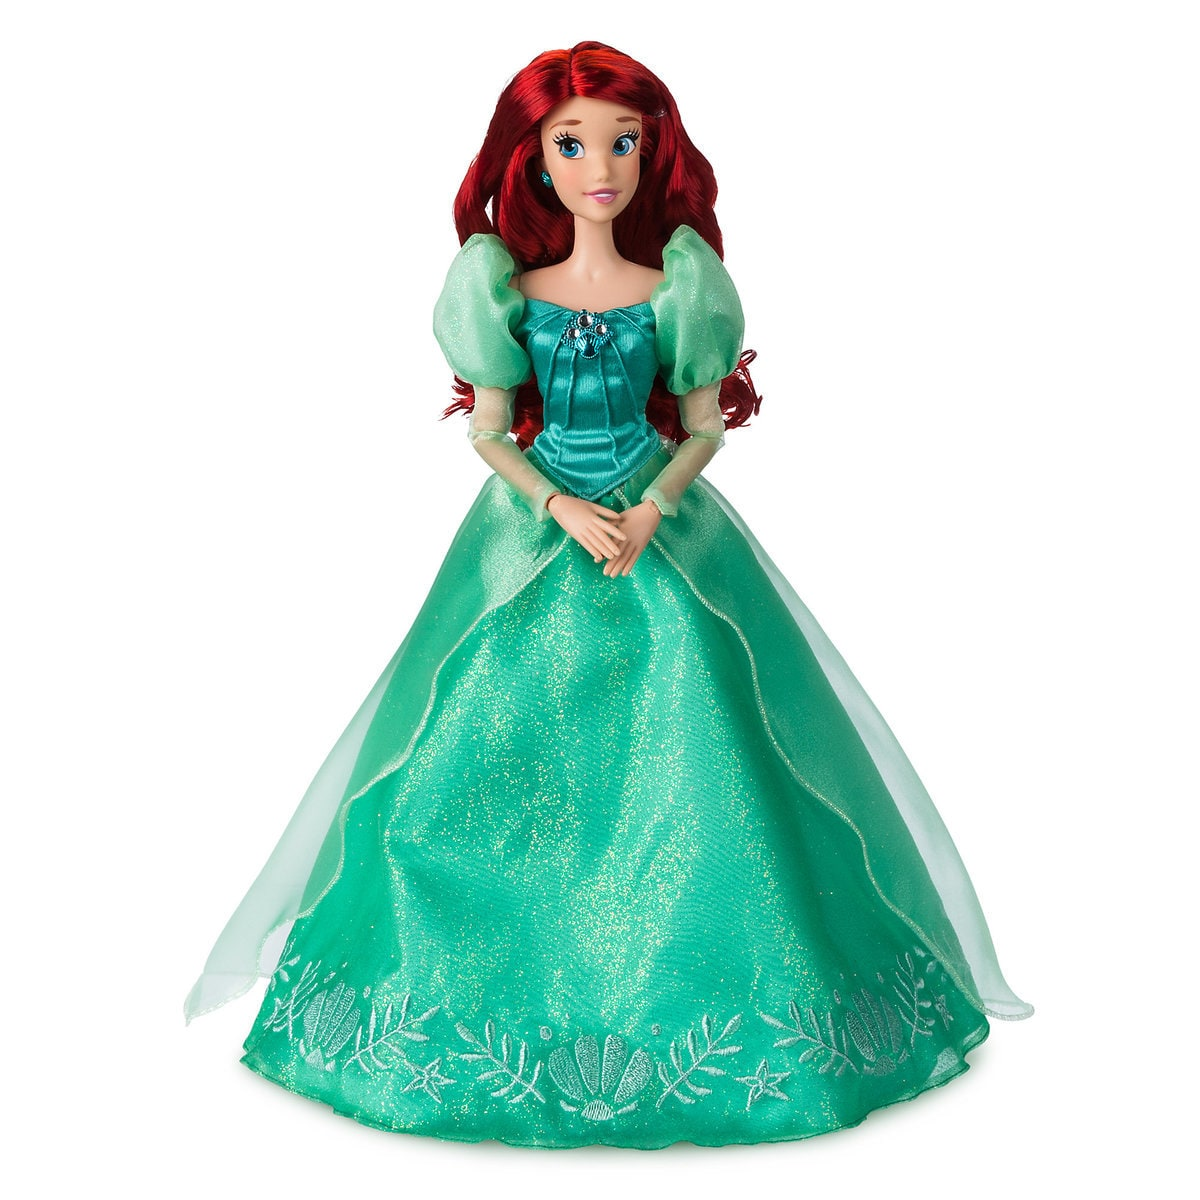 The Little Mermaid Ariel S Celebration Doll Out Now